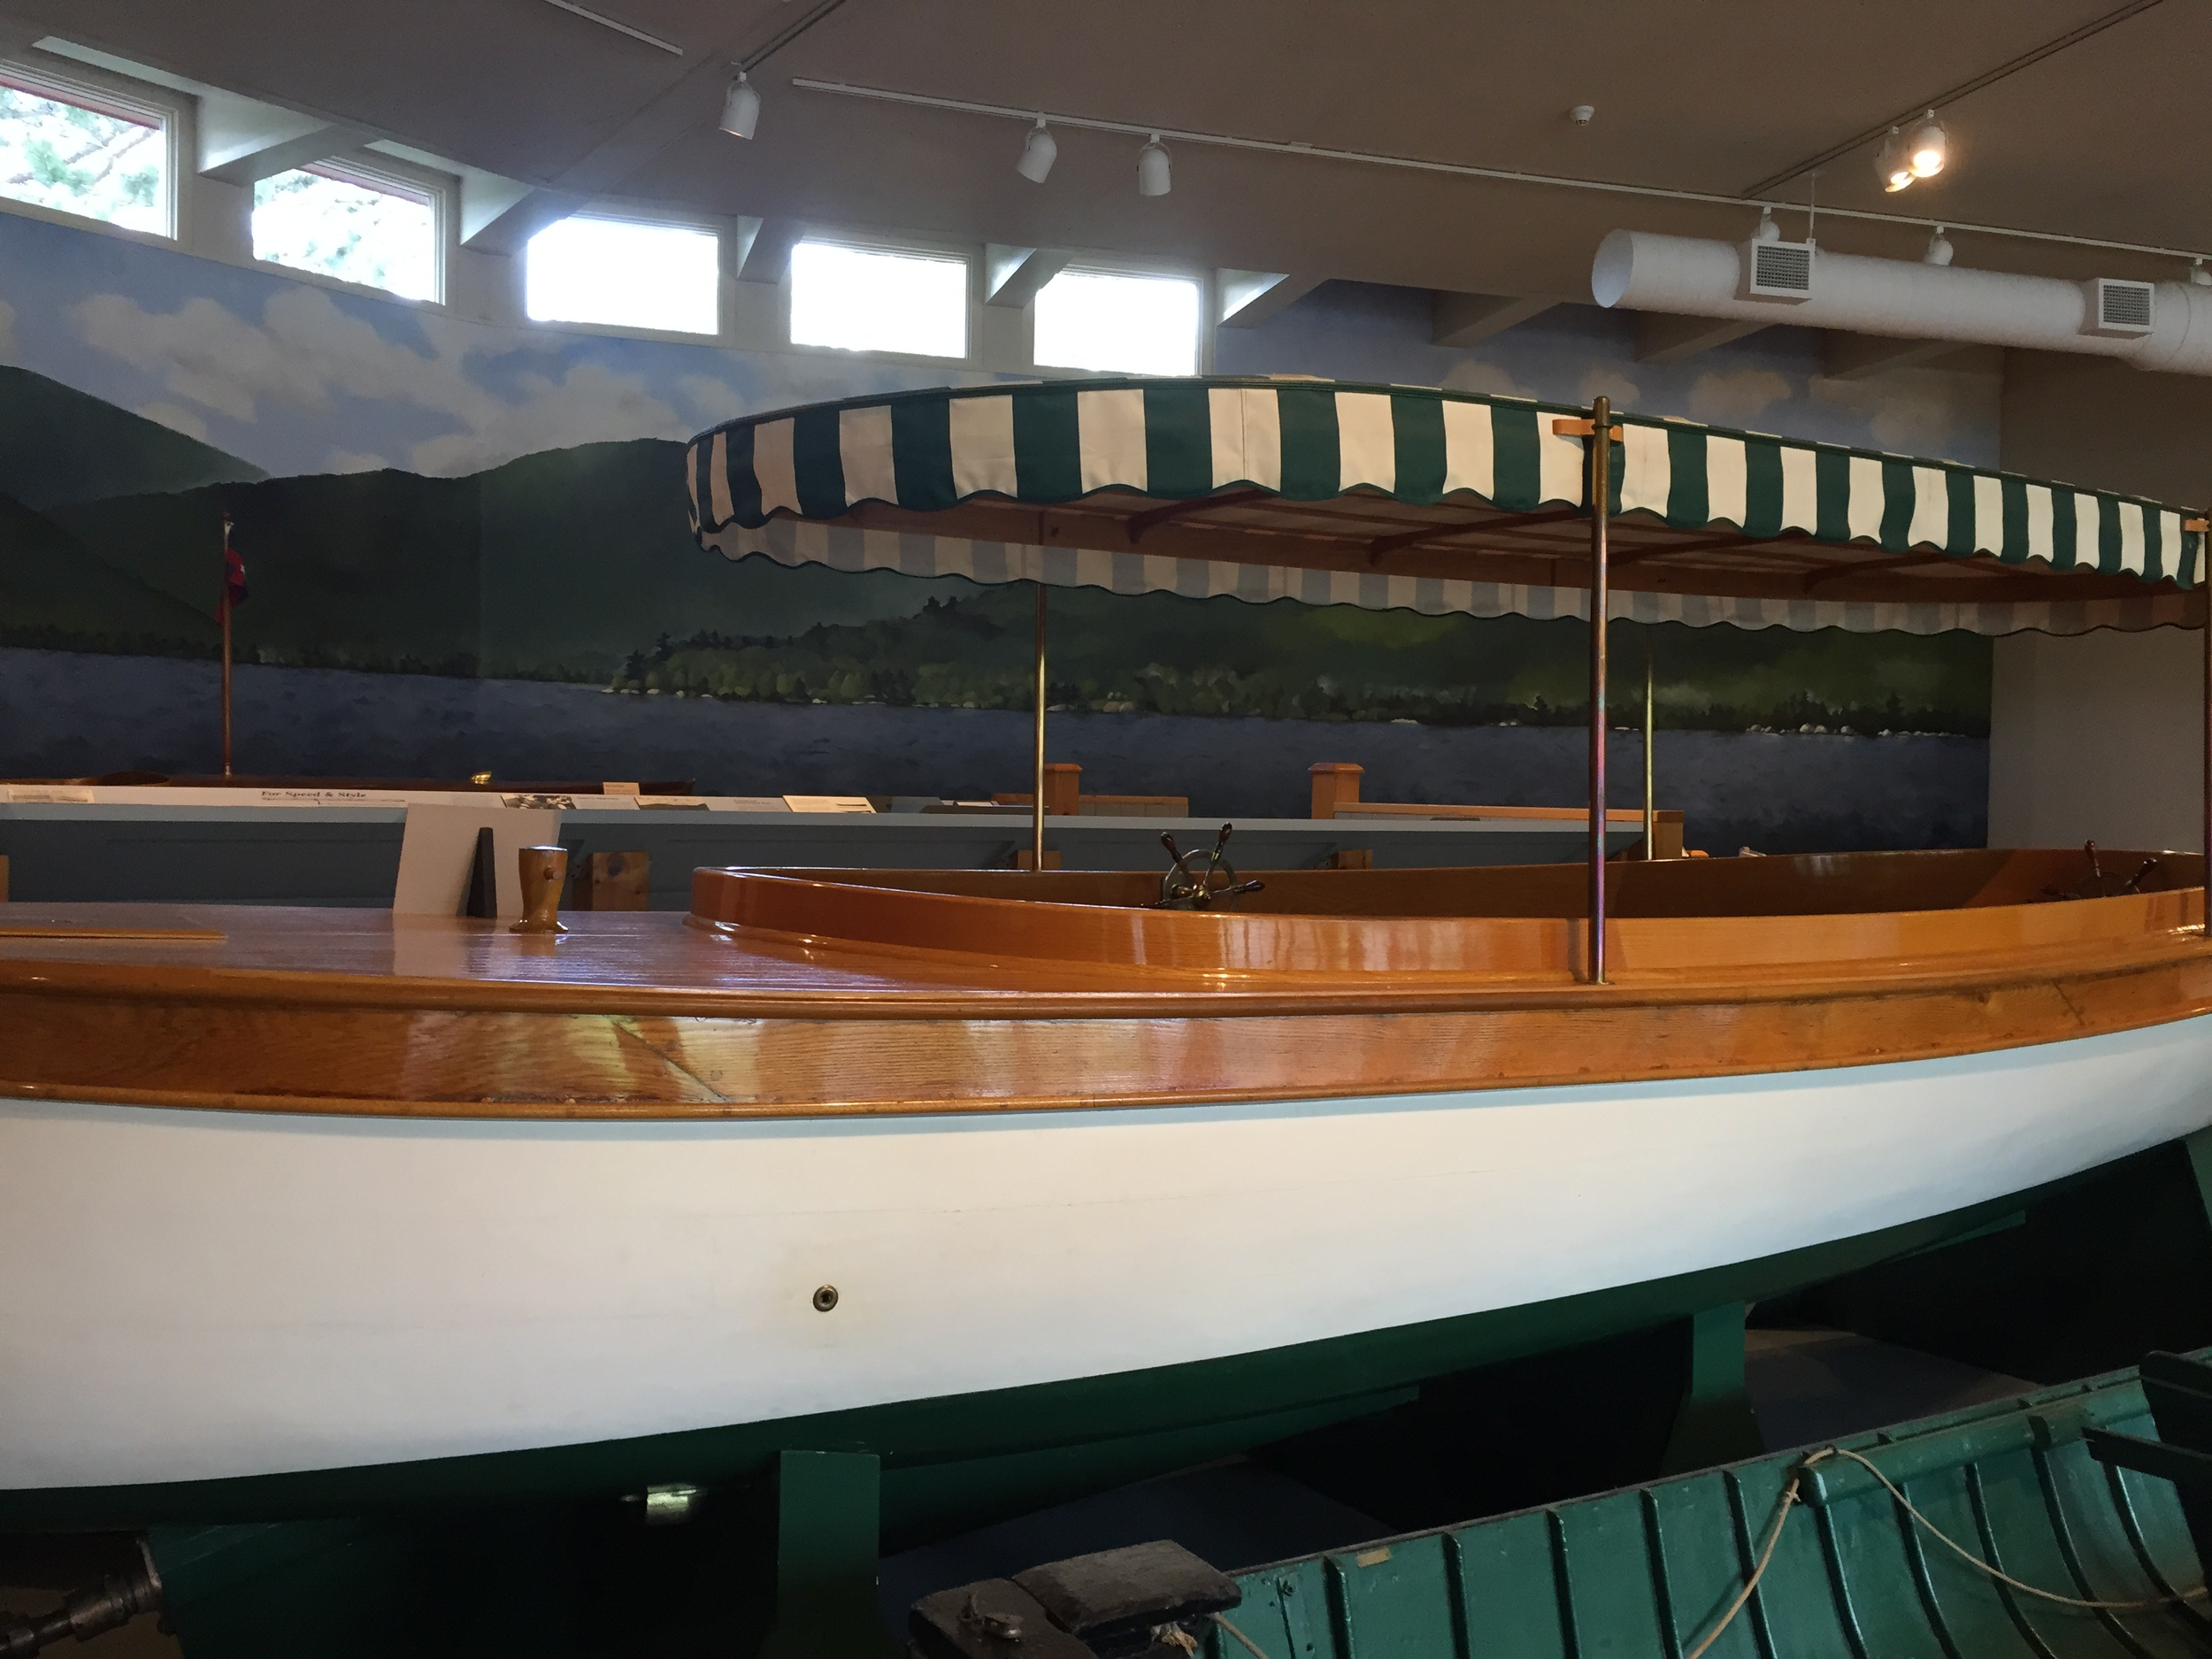 ...and more boats at The Museum of The Adirondacks